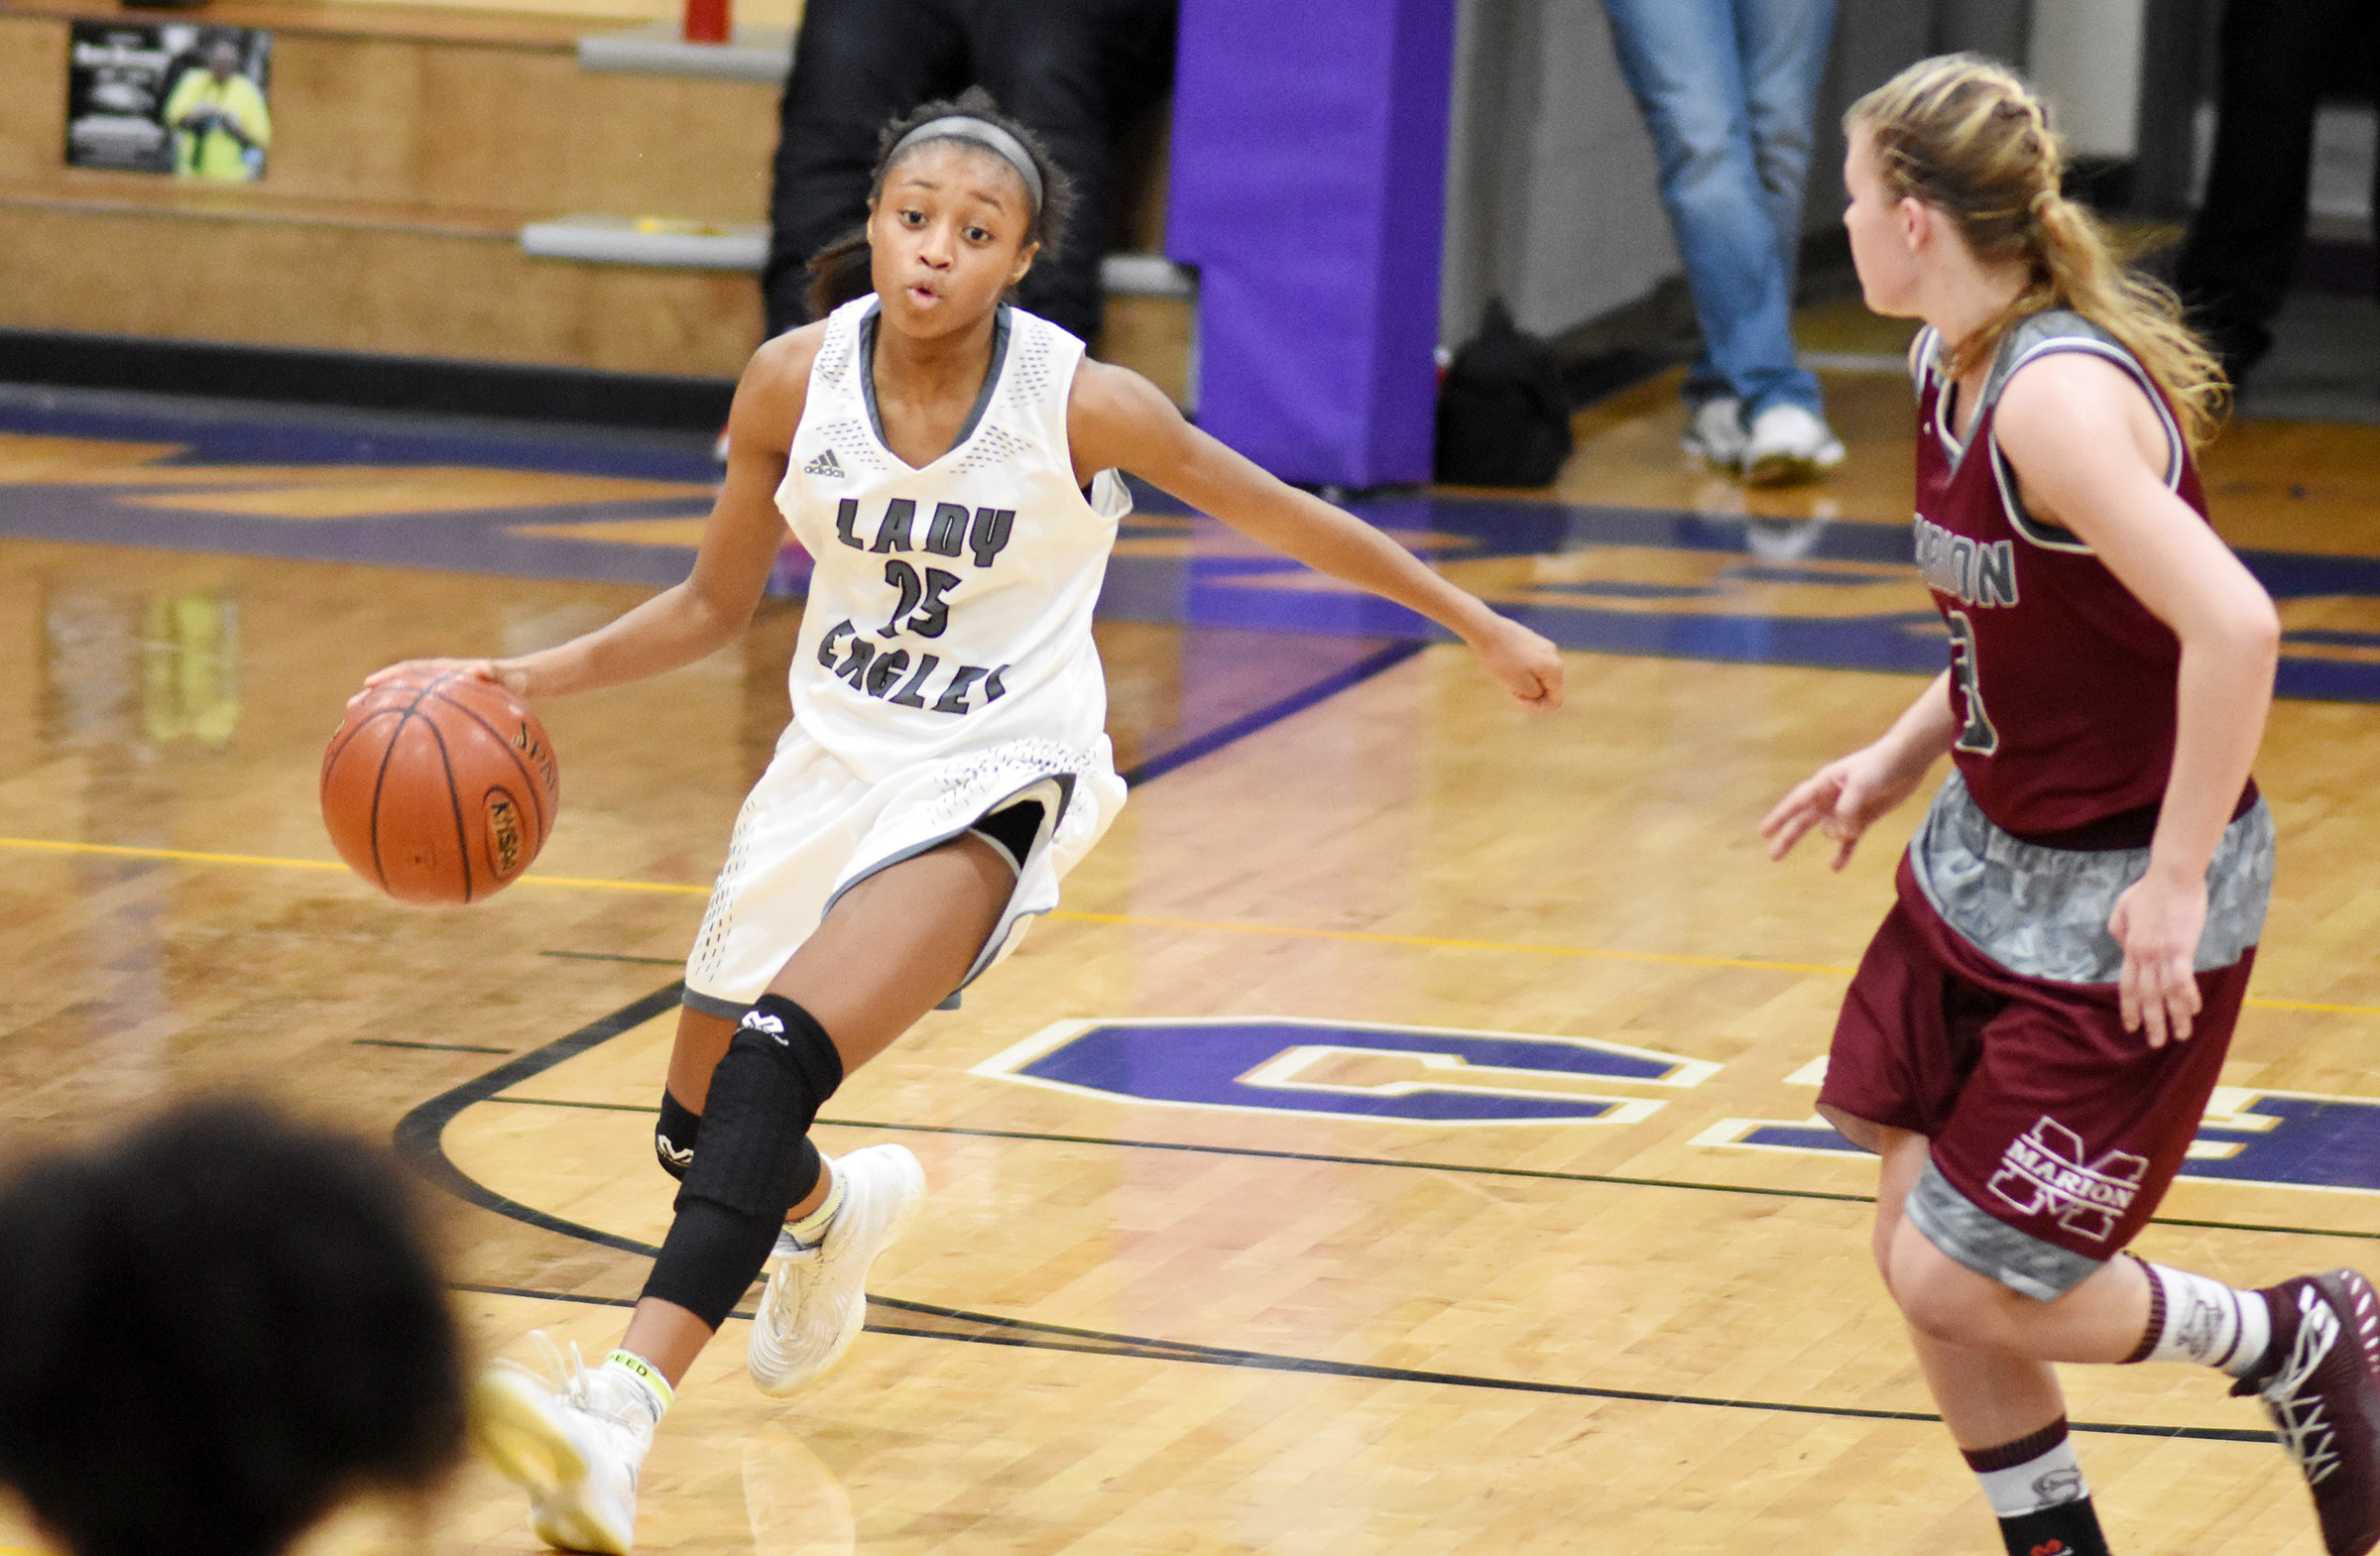 Campbellsville Middle School eighth-grader Bri Gowdy dribbles.